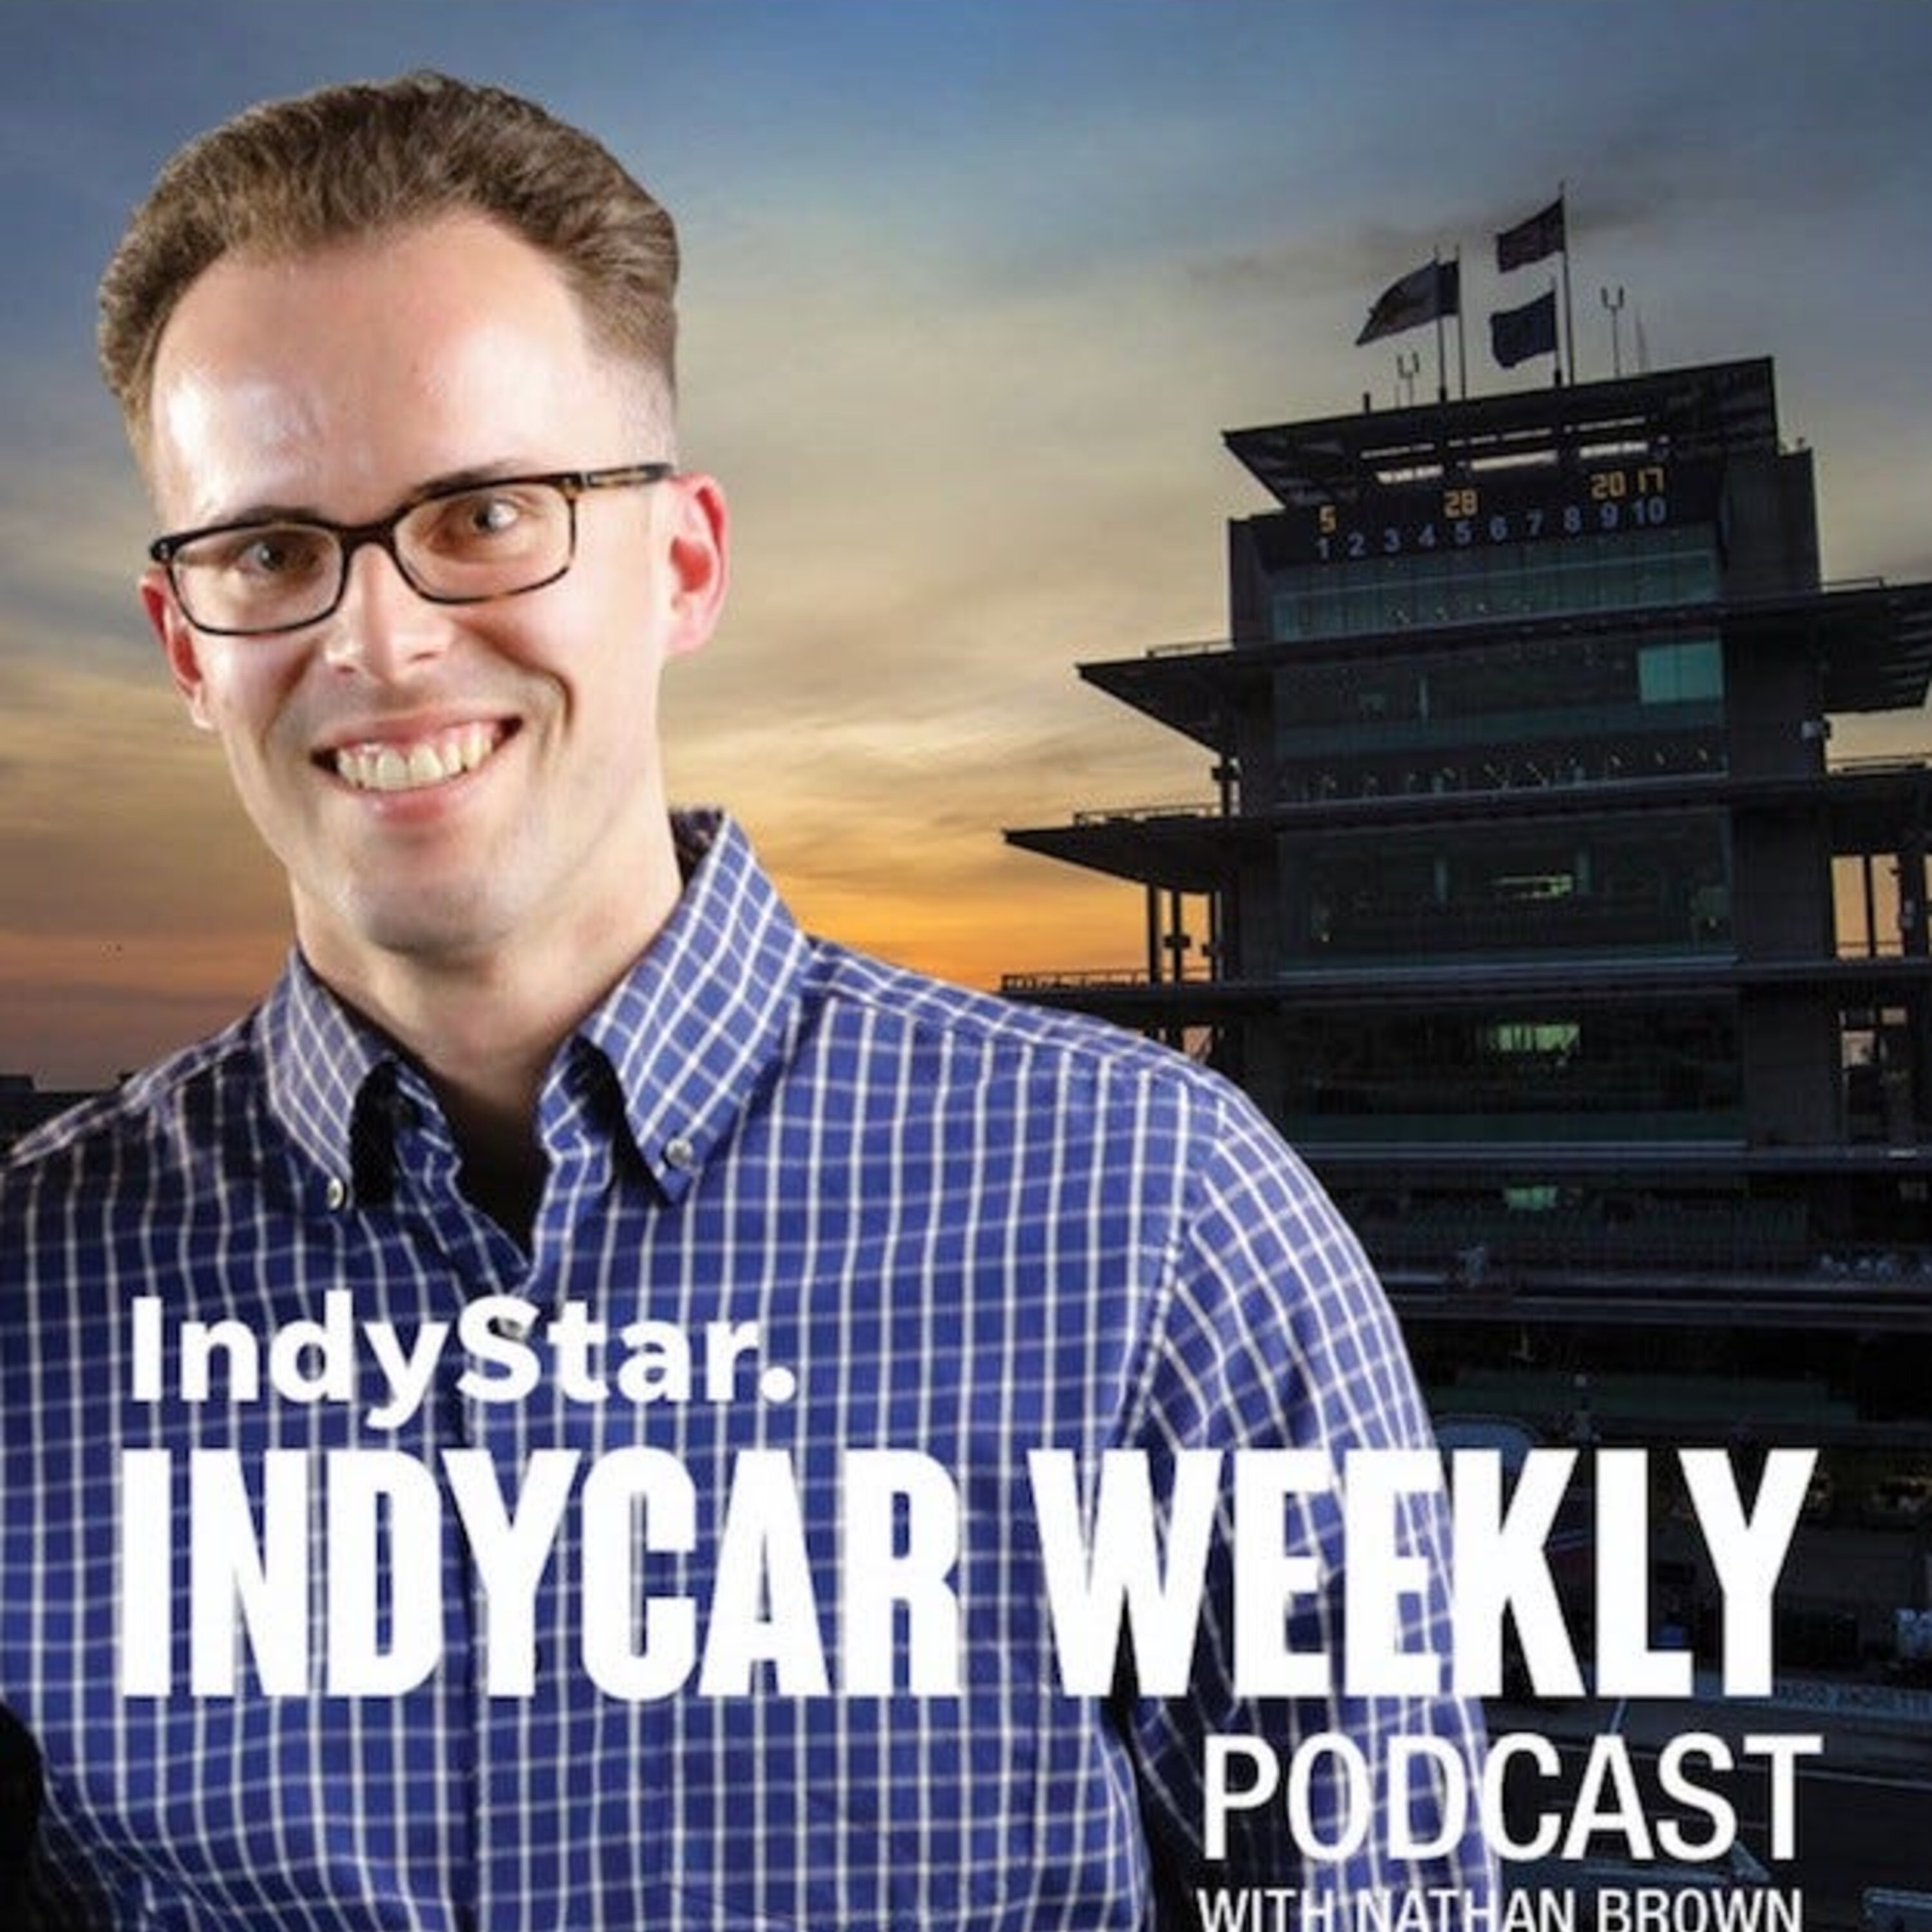 IndyCar Weekly with Nathan Brown: Recapping a memorable Indy 500